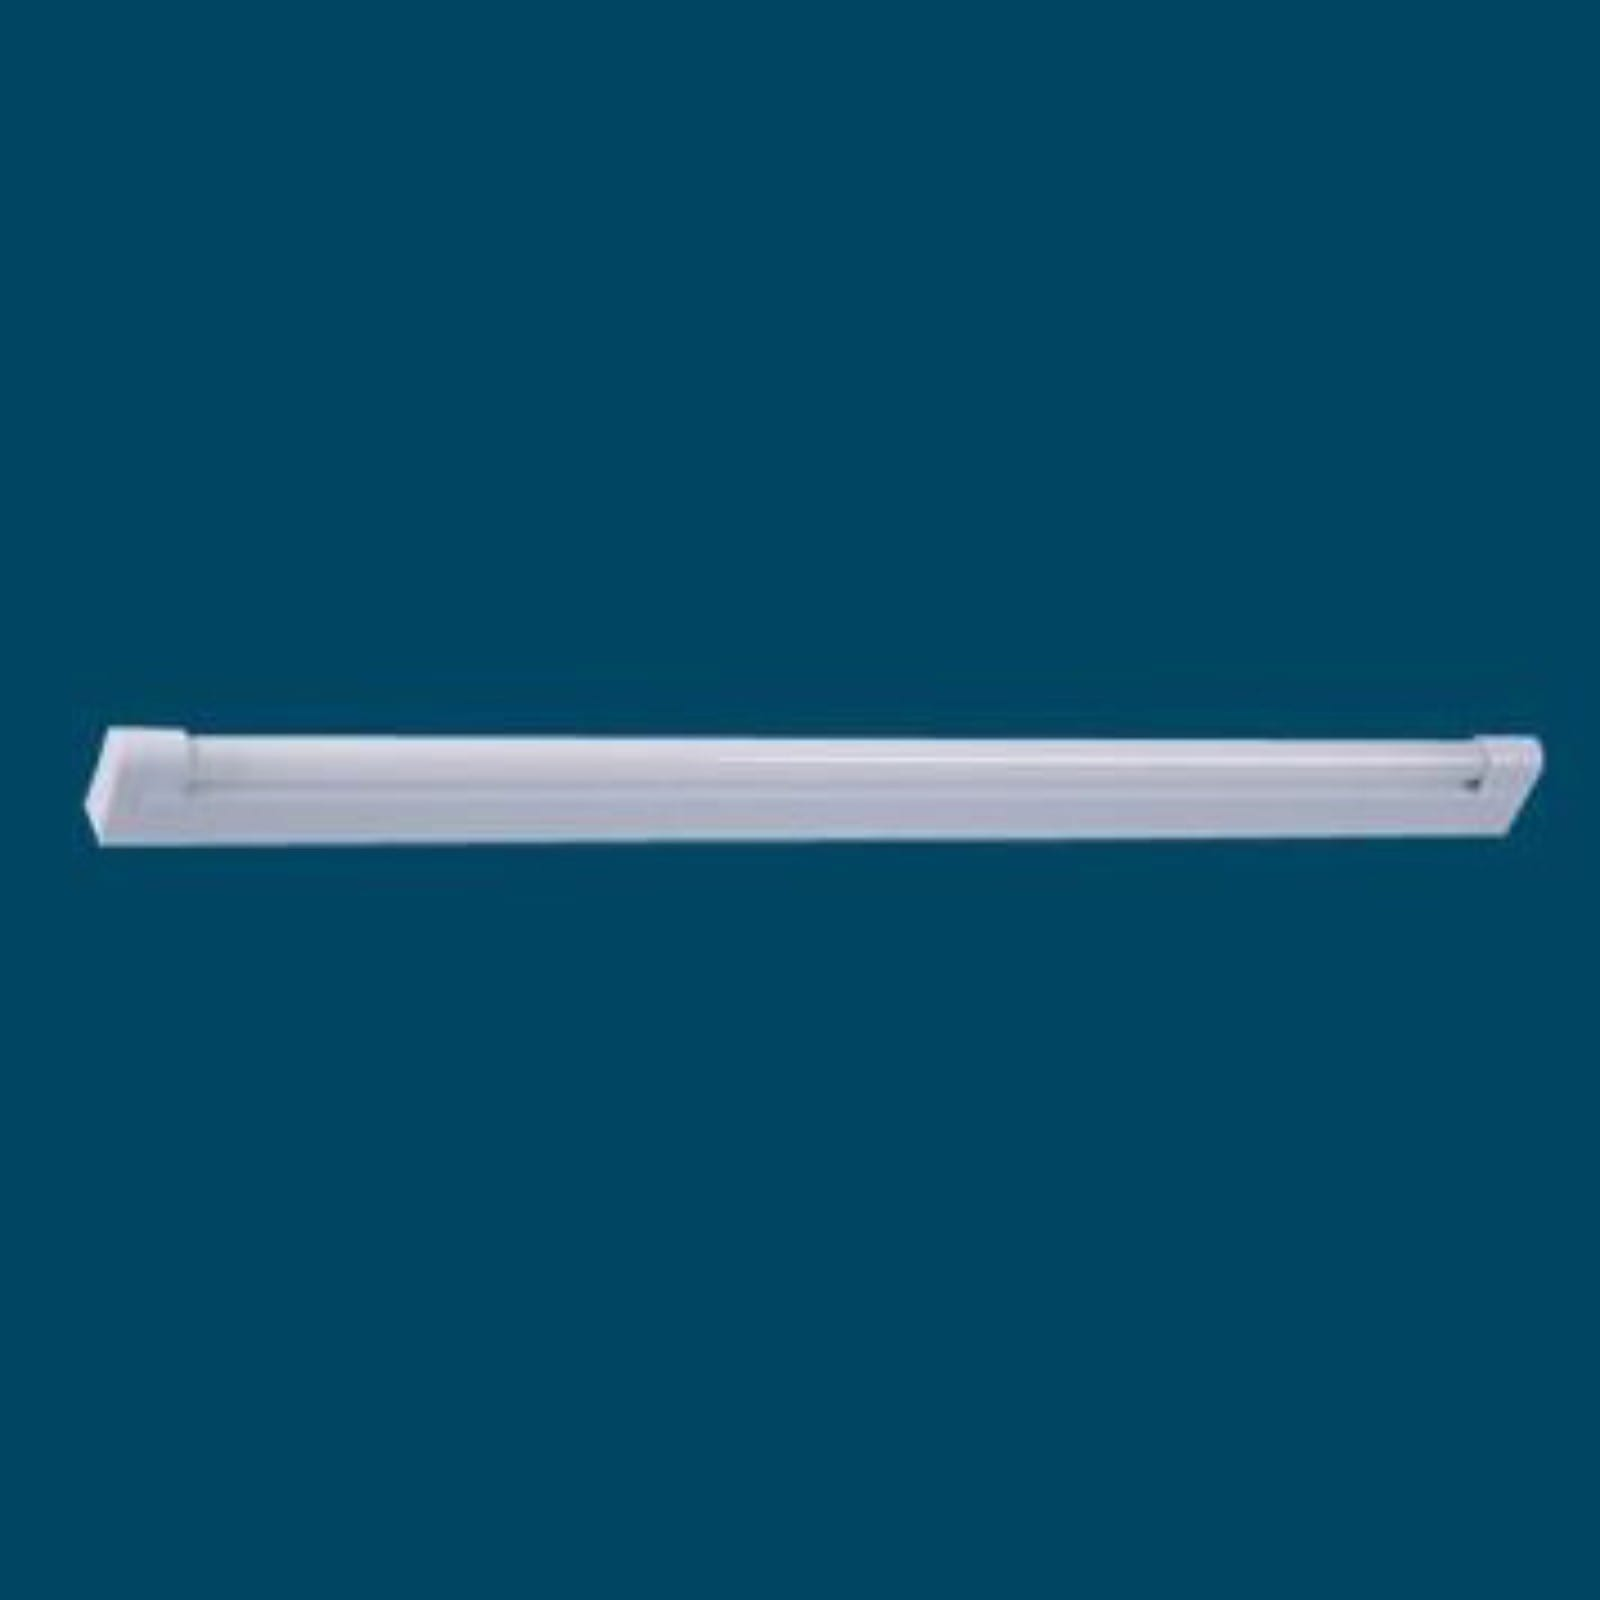 Striplight TL40013 9W LED lysarmatur | Illuminor as